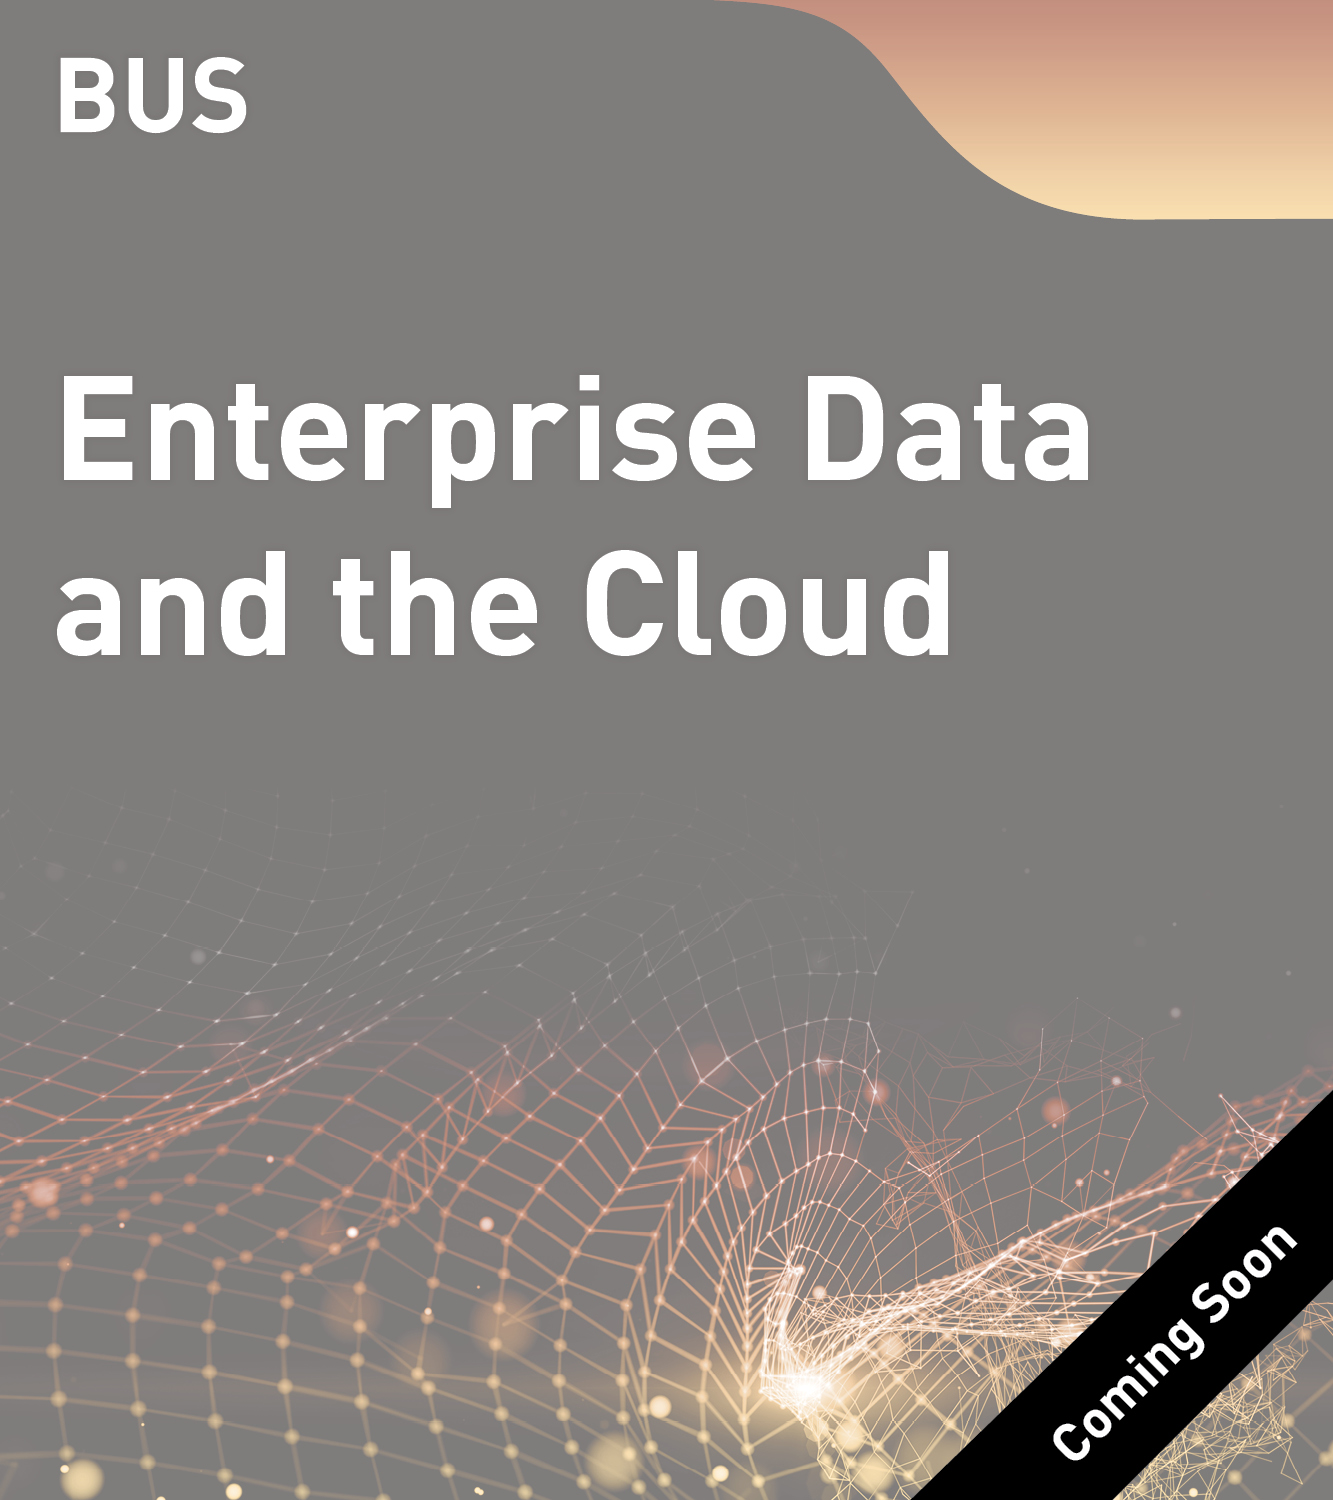 BUS - Enterprise Data and the Cloud